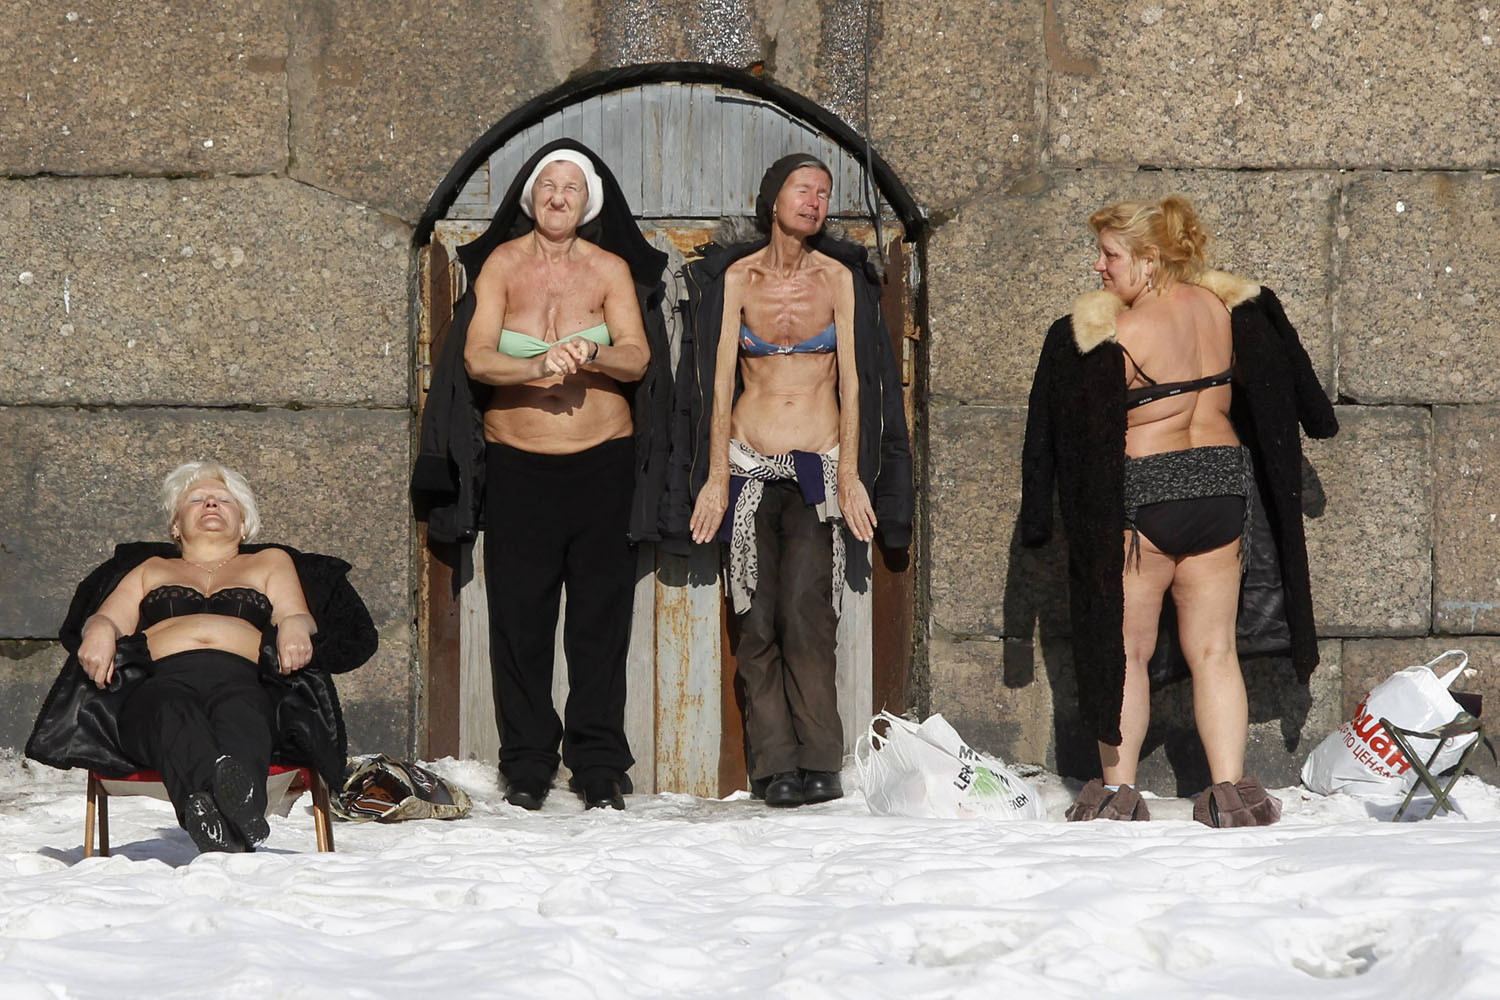 March 10, 2013. People sunbathe by the wall of the Peter and Paul Fortress in St. Petersburg, Russia.